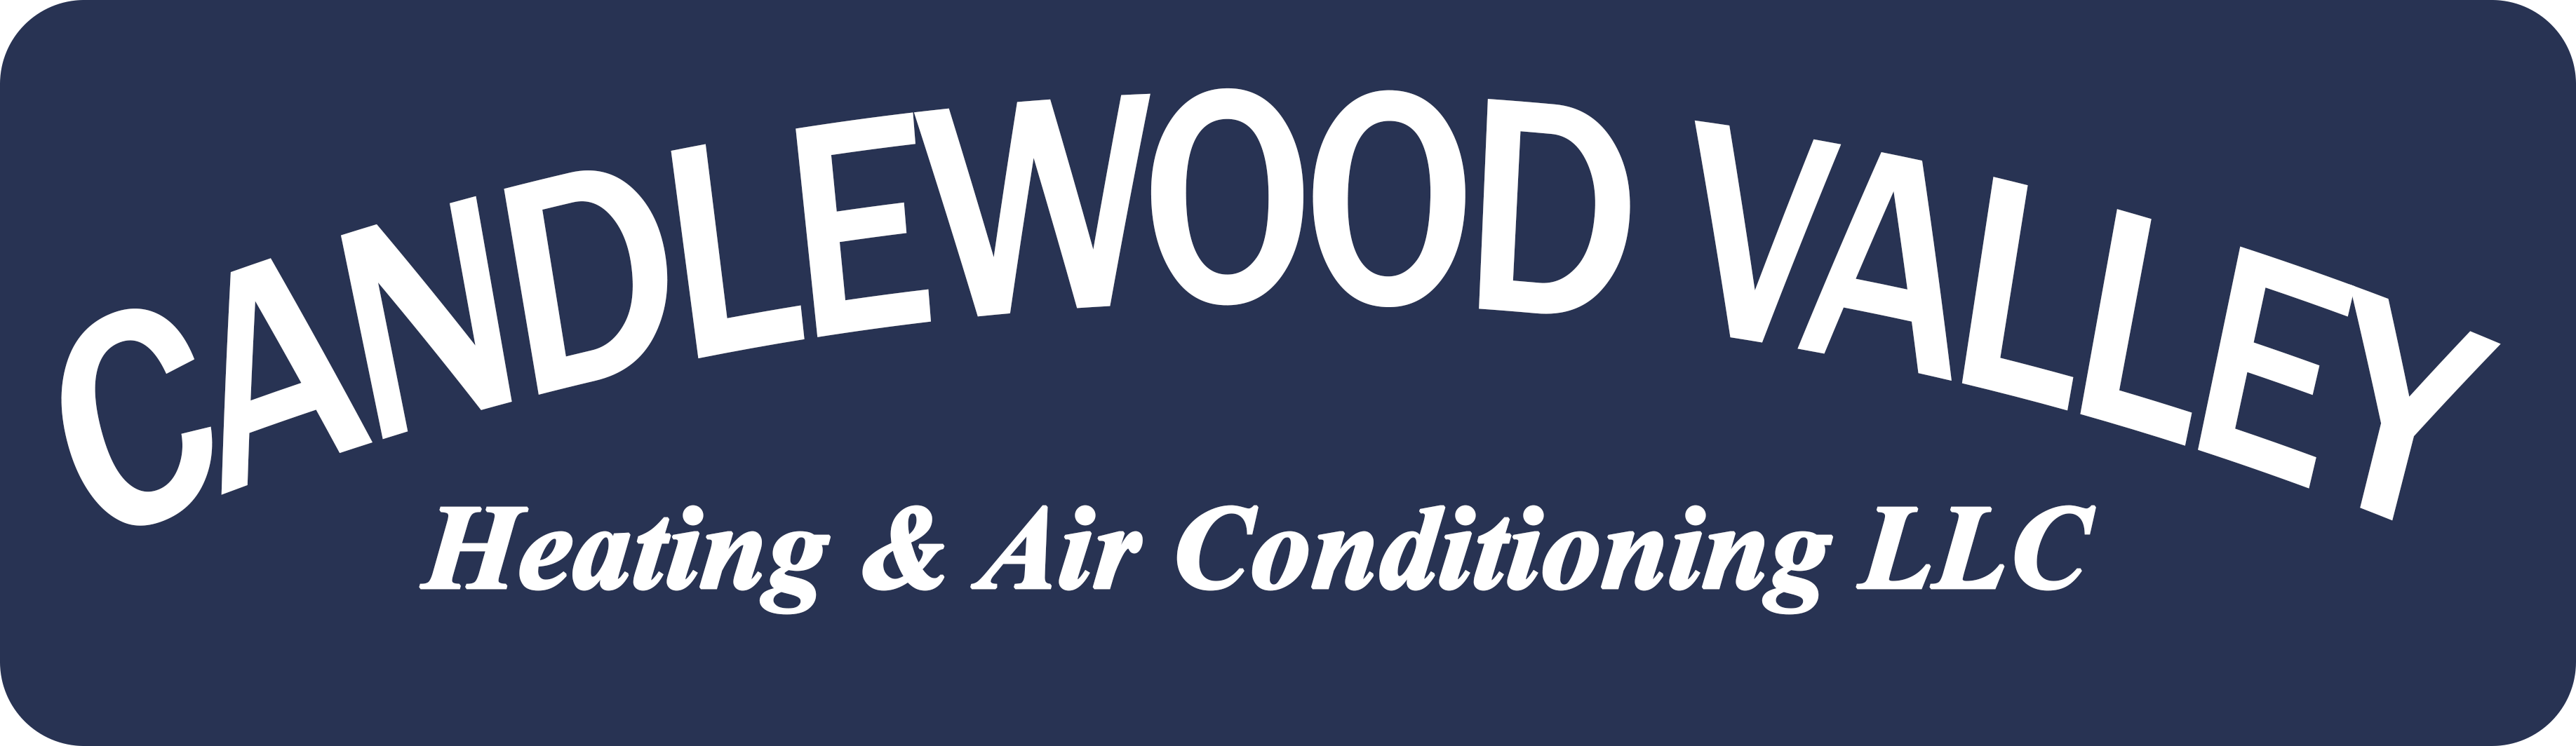 Candlewood Valley Heating & Air Conditioning, LLC